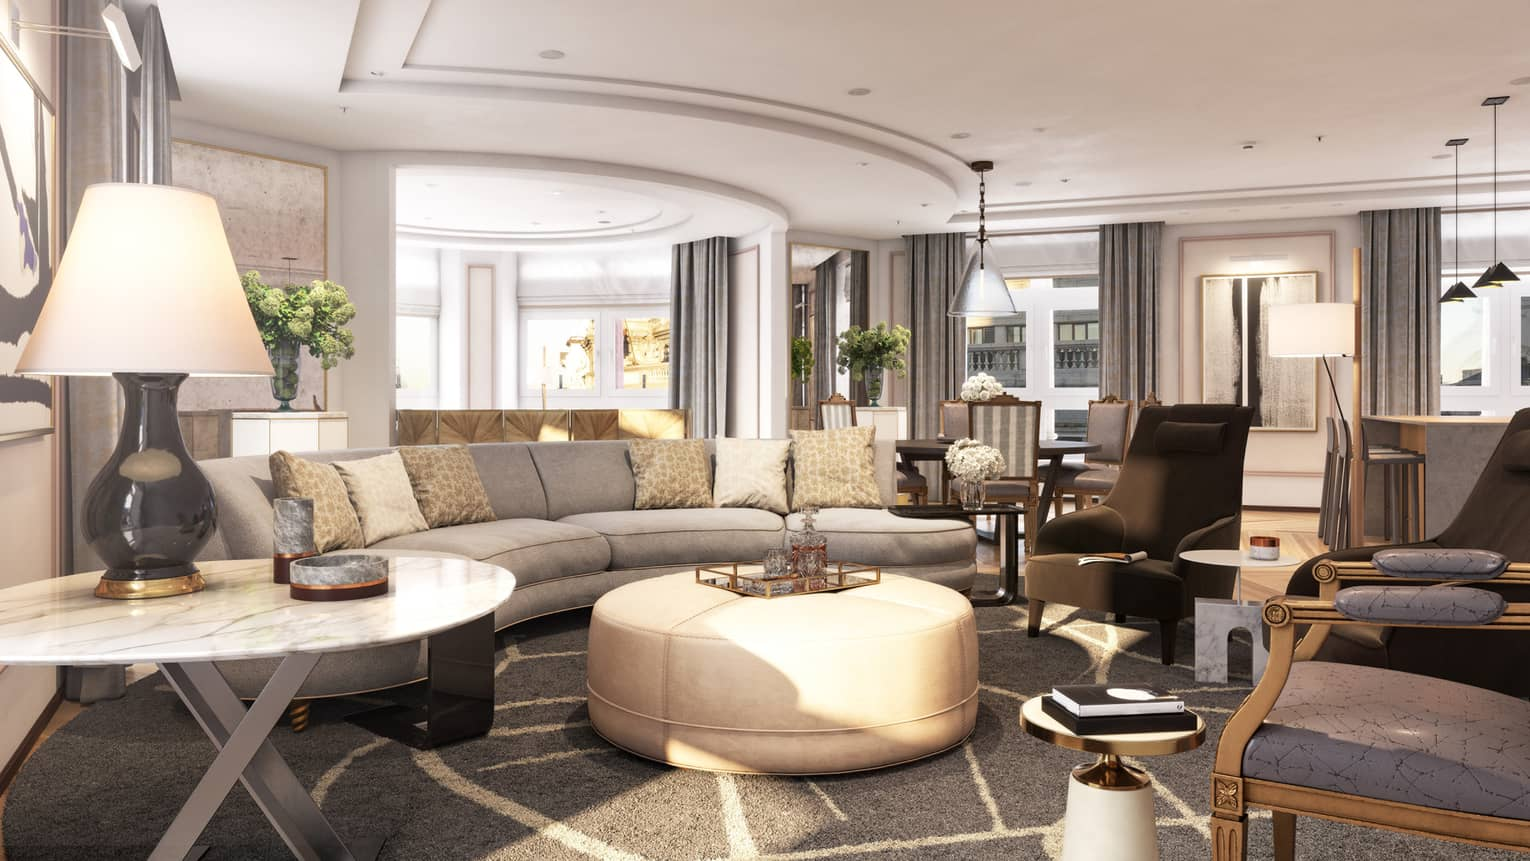 Four Seasons hotel madrid's presidential suite is modern and neutral with a gray and white geometric rug, cream couch and coffee table, darkk gray chairs, gray curtains and light pouring in the floor to ceiling window